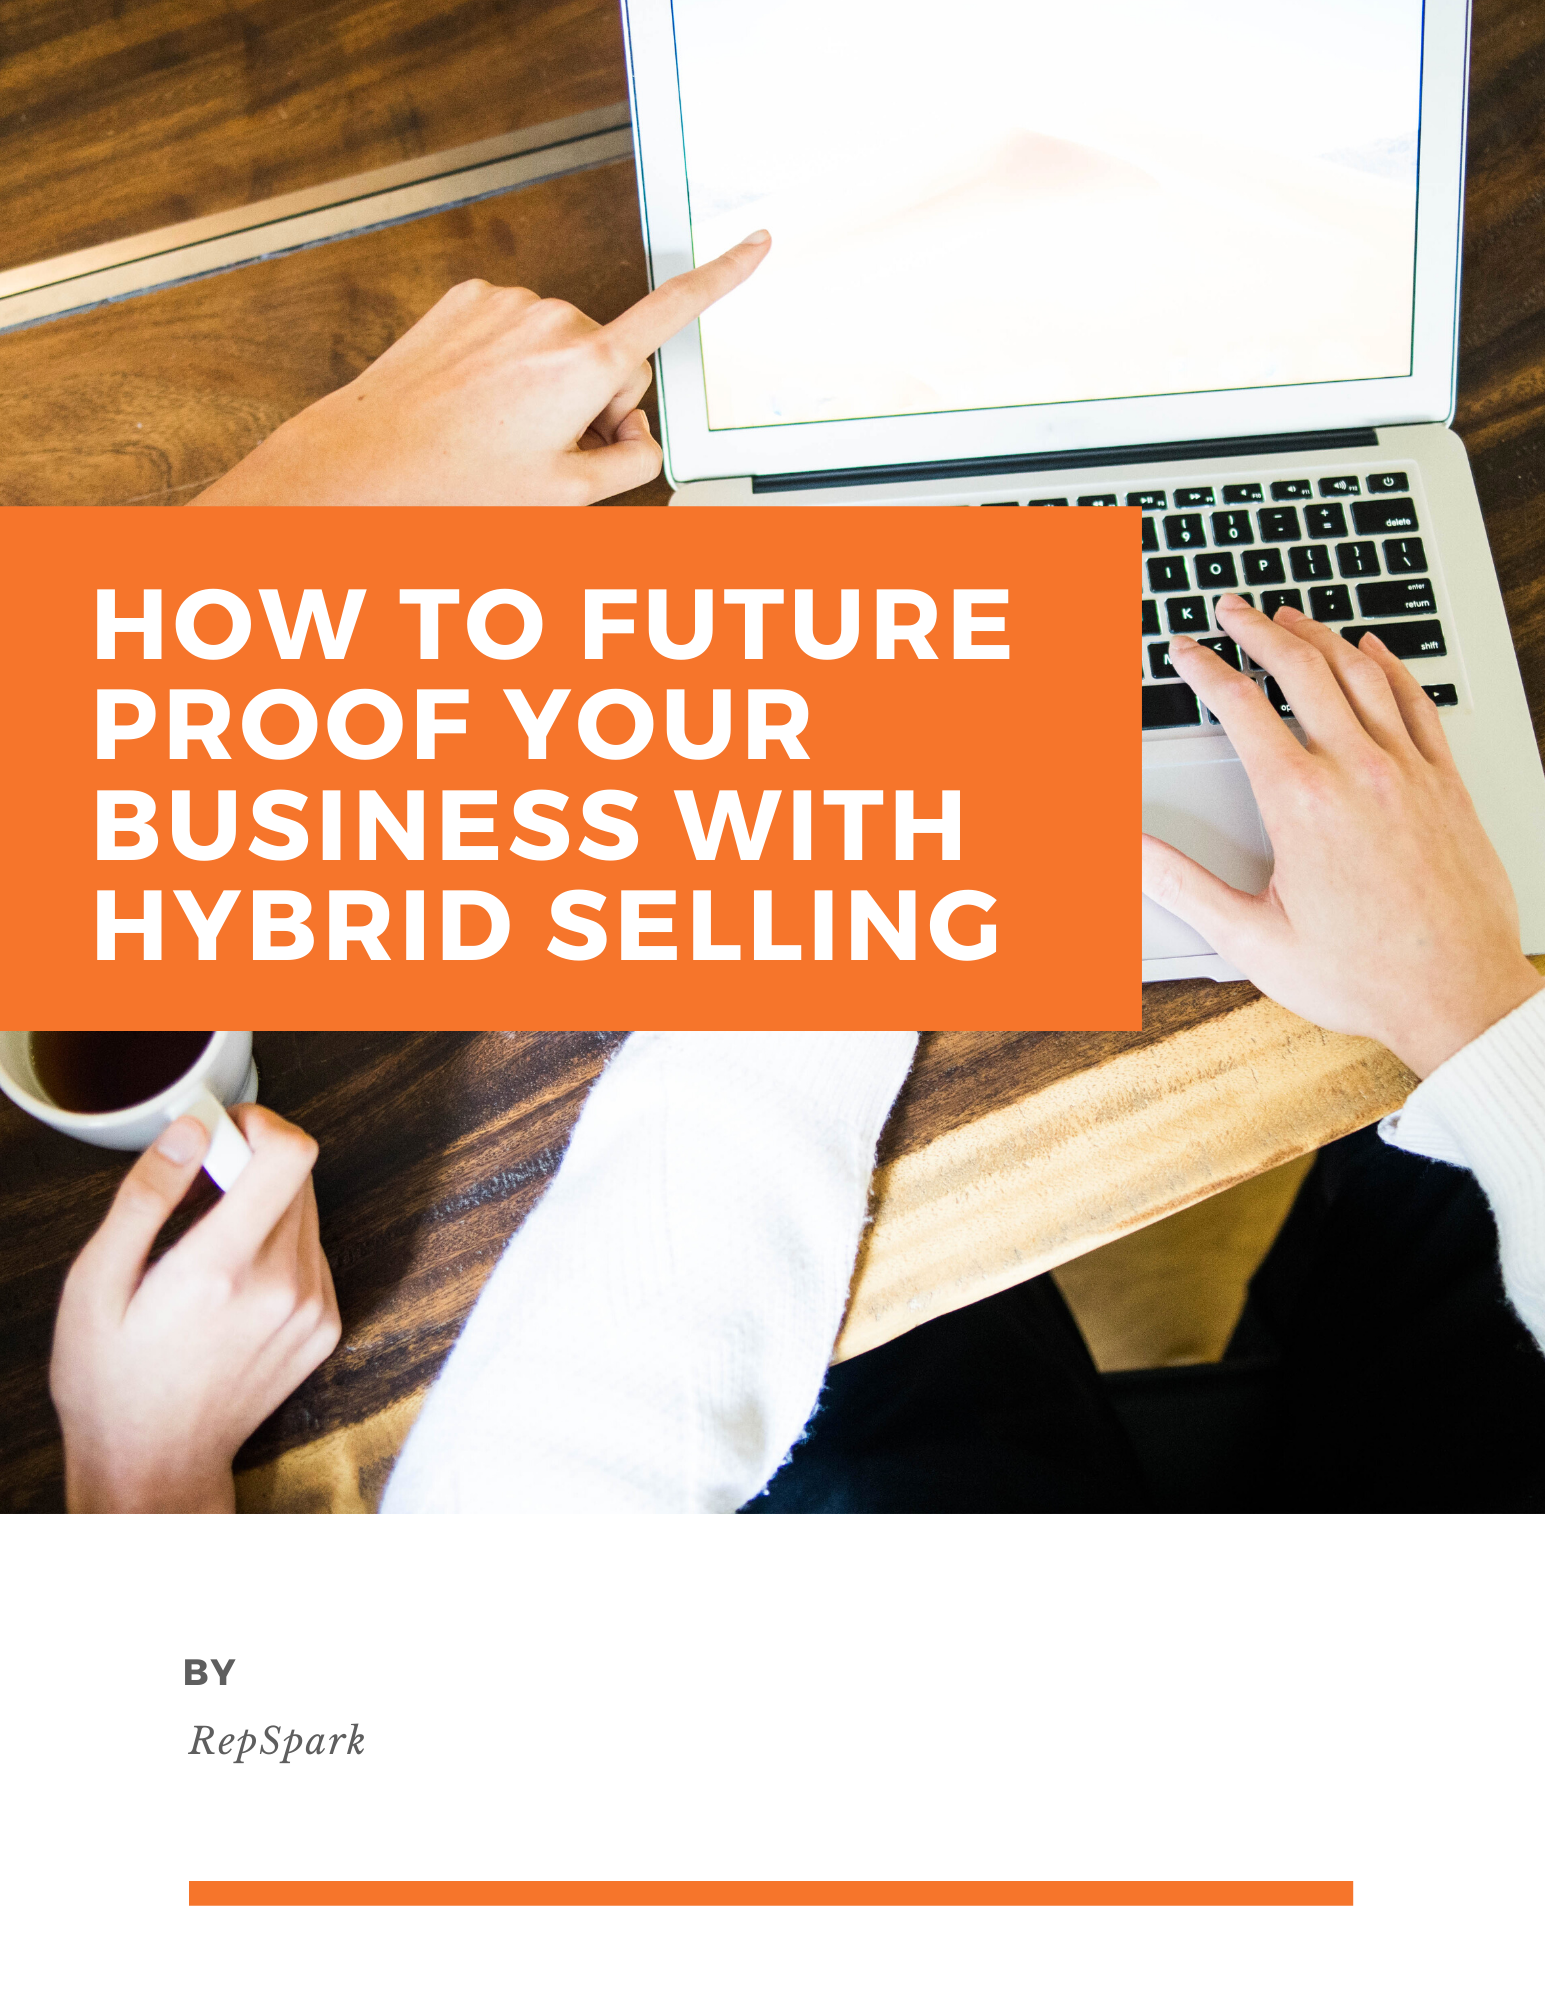 RepSpark  How to Future-Proof Your Business with Hybrid Selling